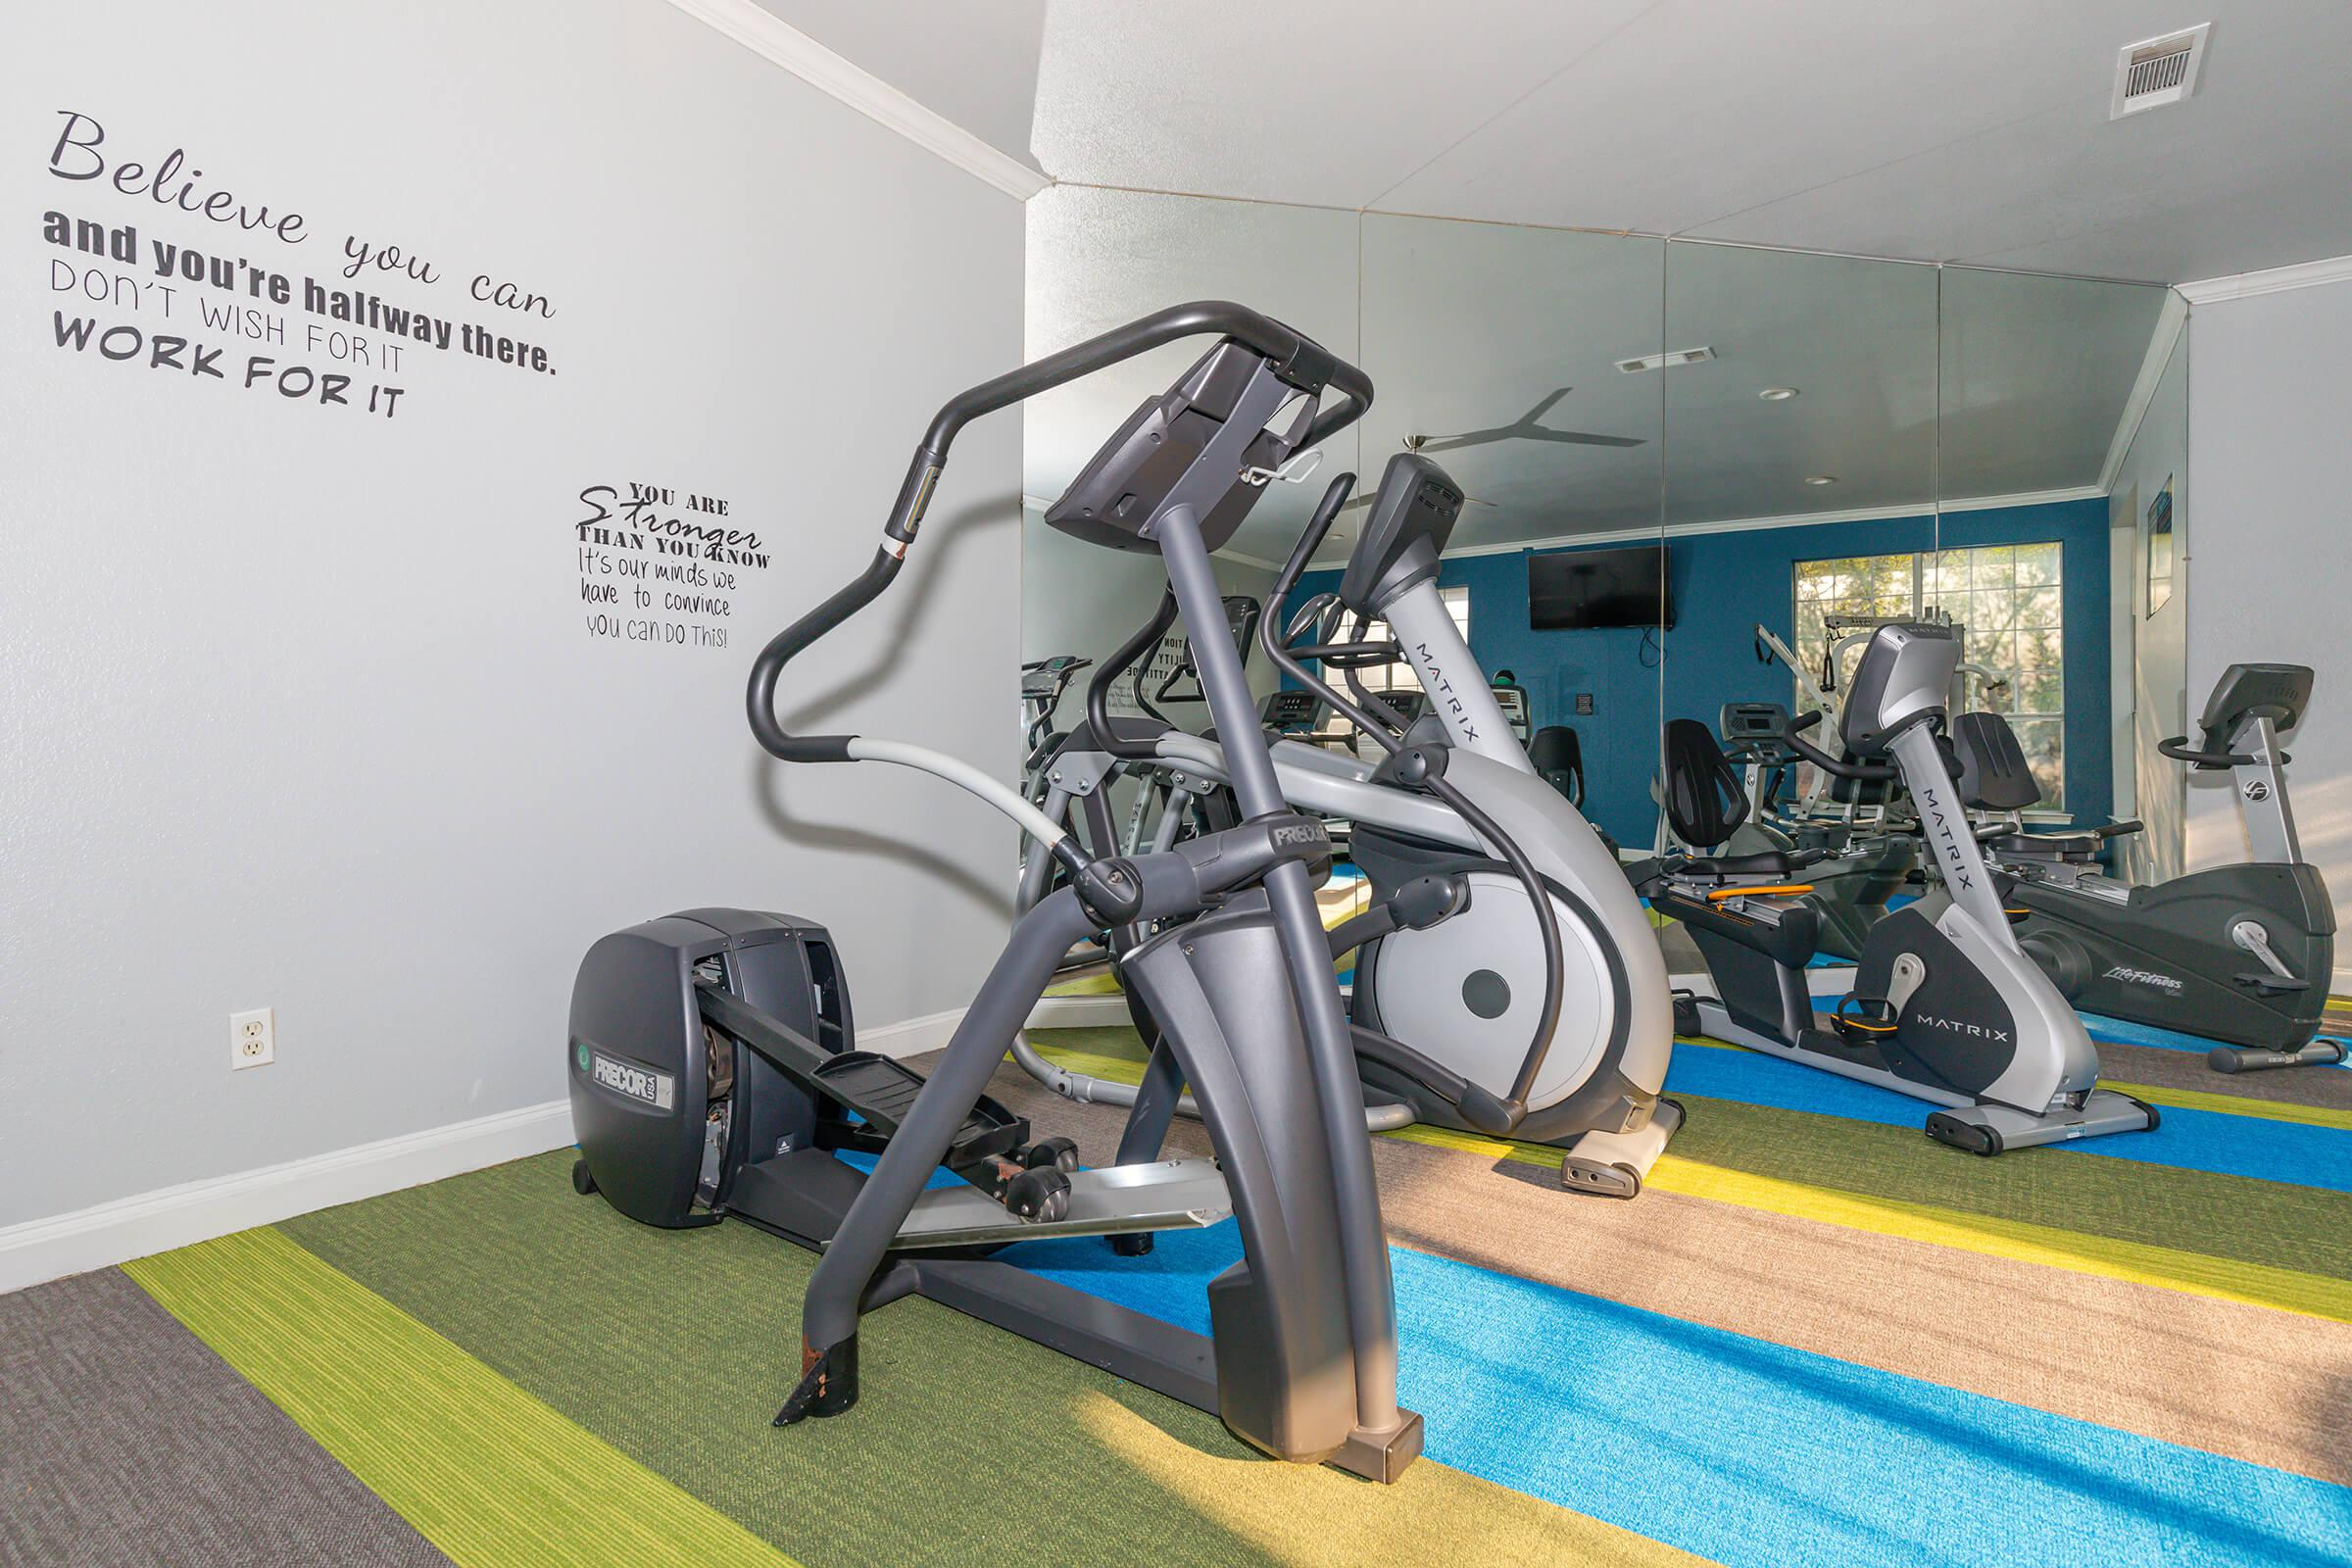 GET A JUMP ON YOUR DAY IN OUR FITNESS CENTER